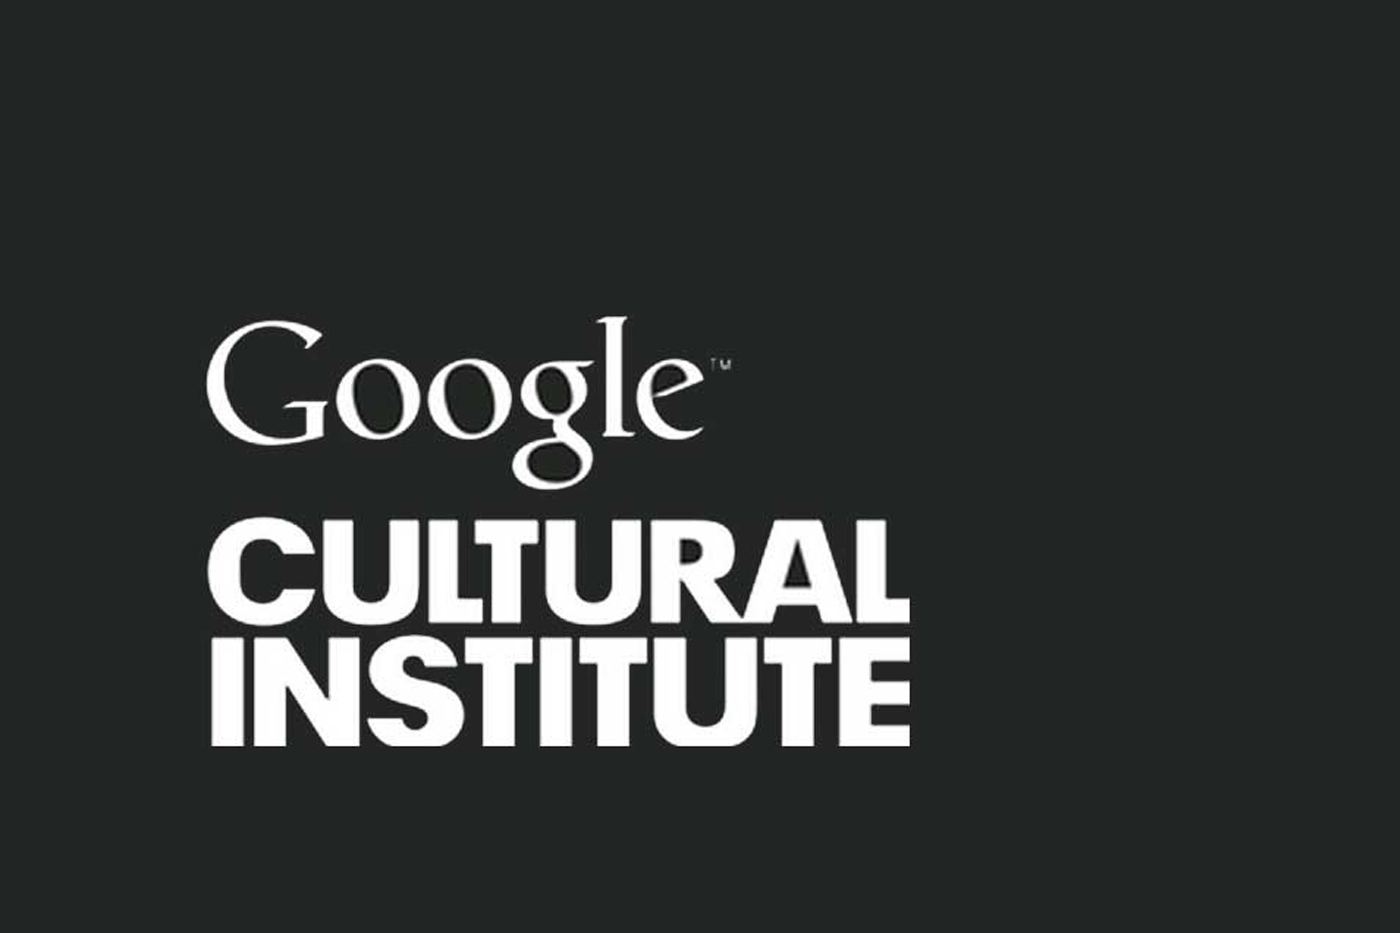 google, google art project, arte, art, google cultural institute, neuro media, neuromedia, informacion, blog, noticas, innovacion, agencia, cali, agencia cali, publicidad, mercadeo, marketing